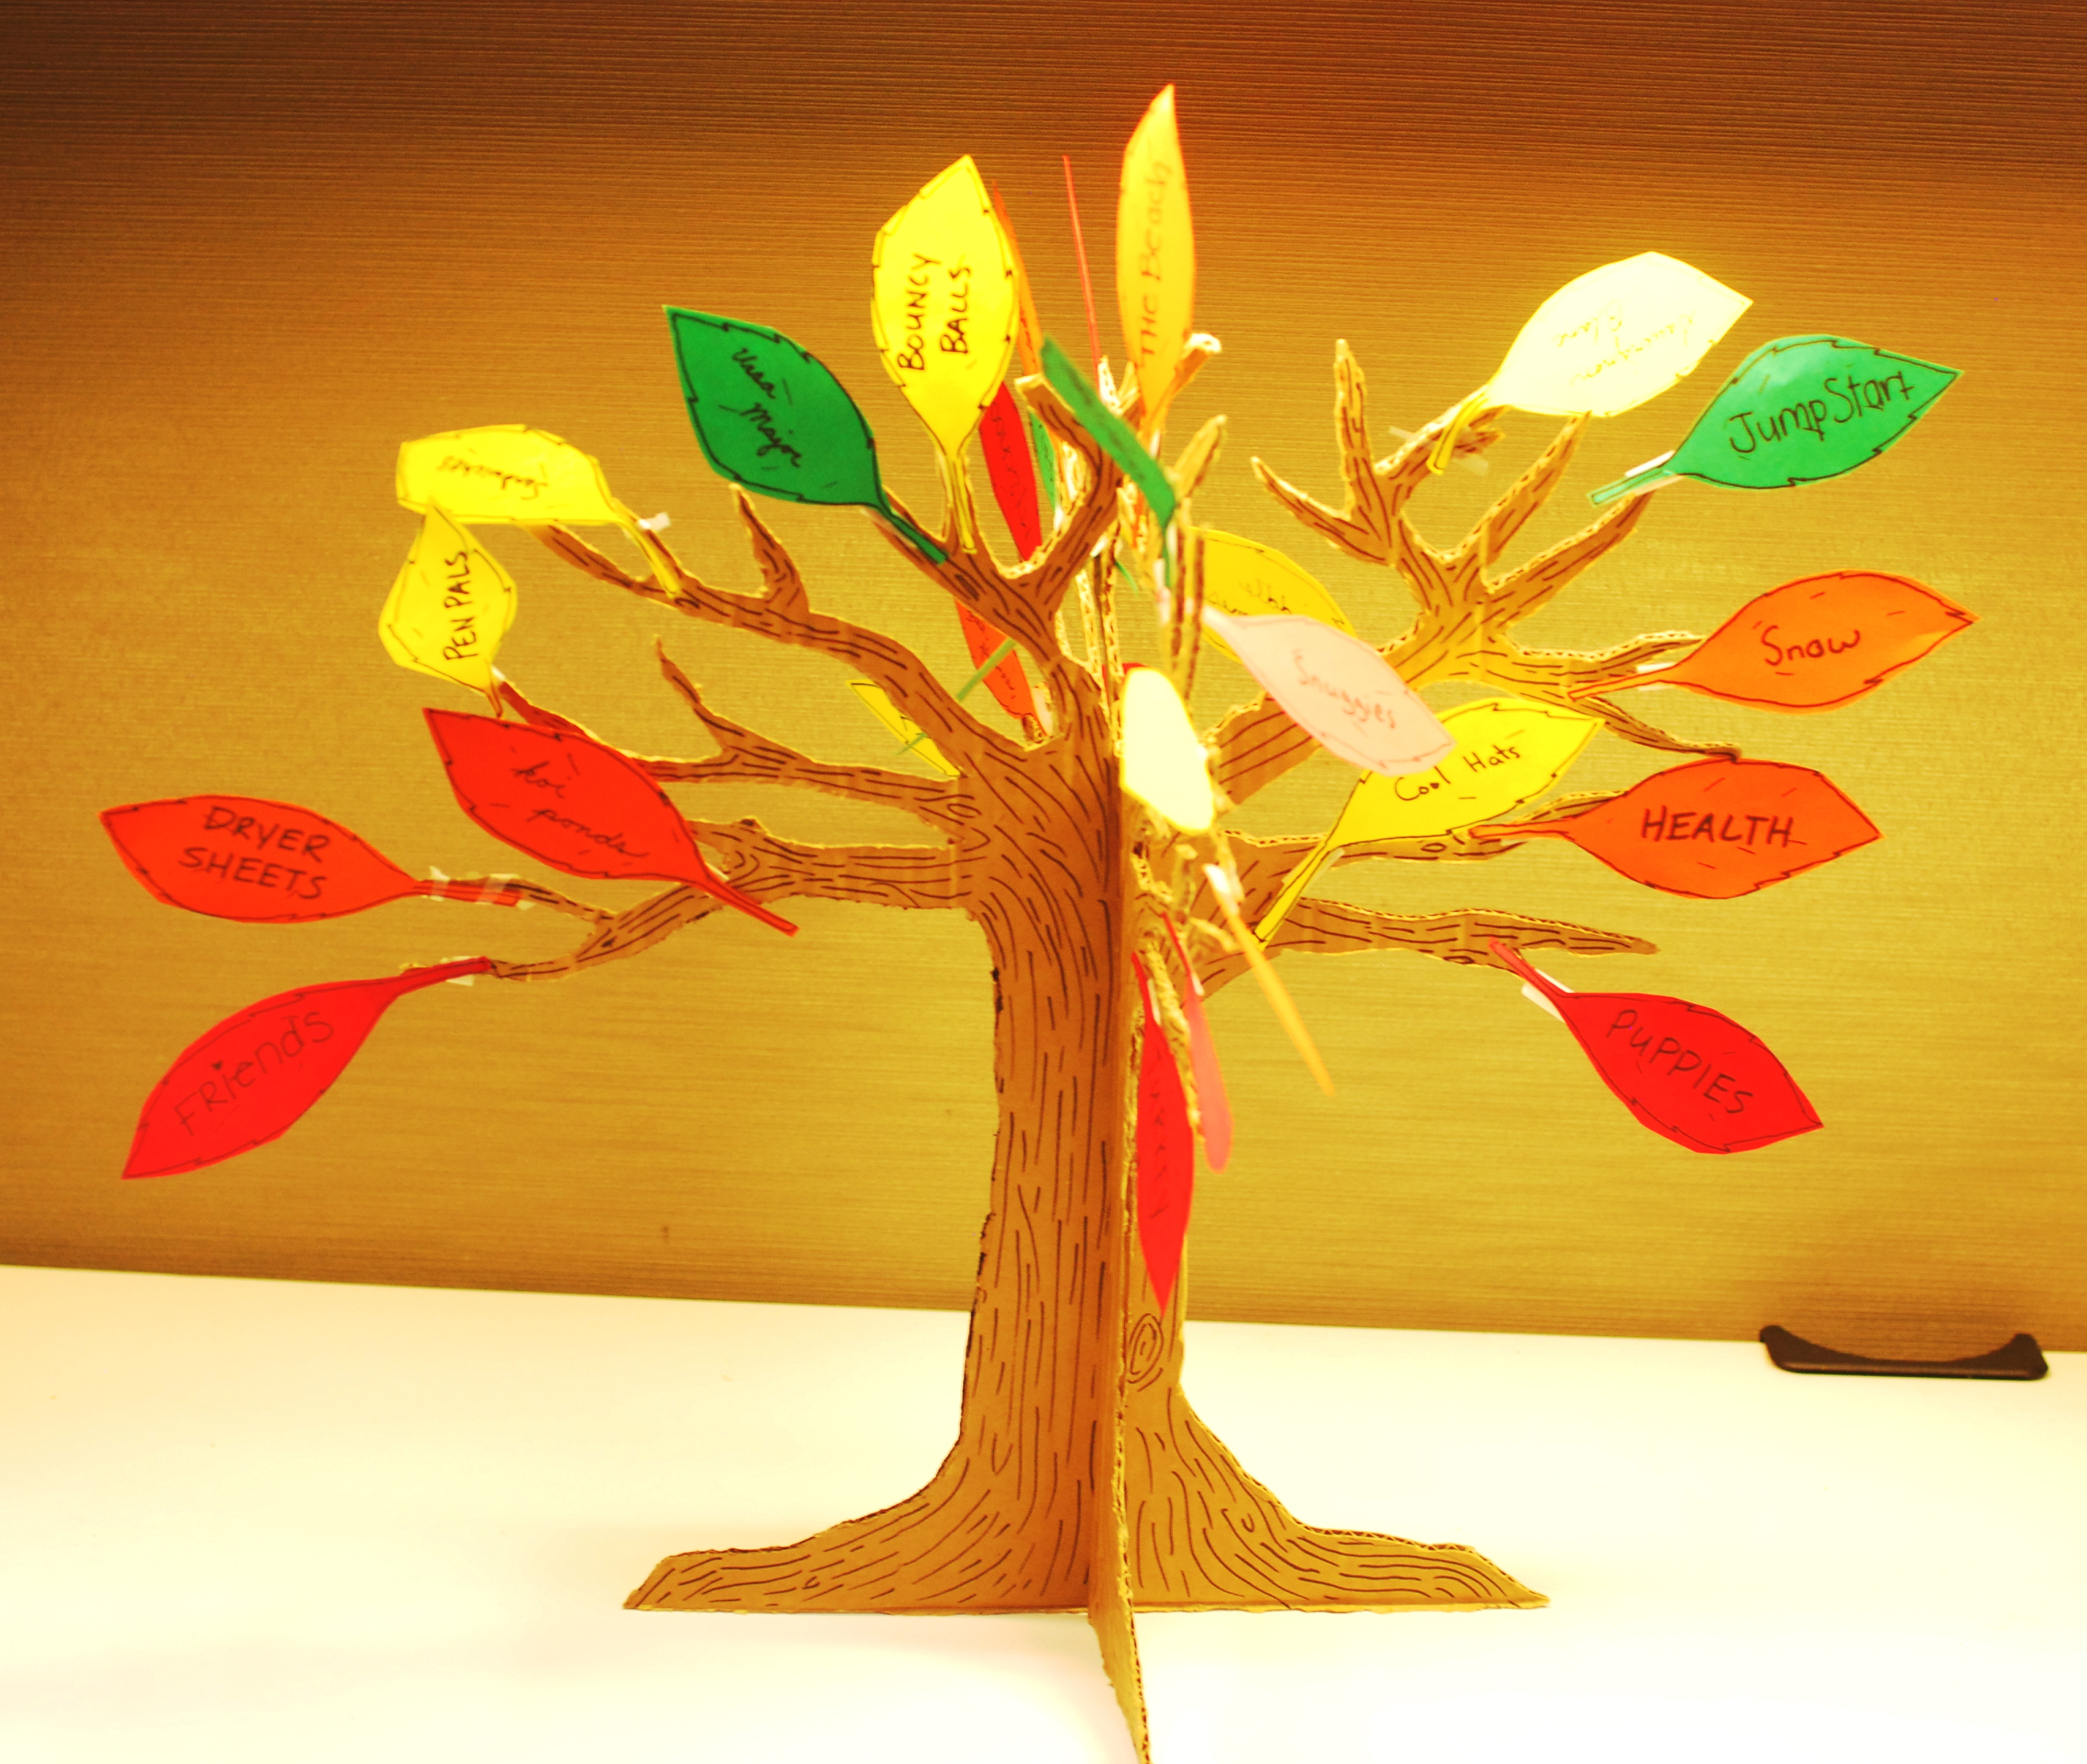 The Giving Thanks Tree